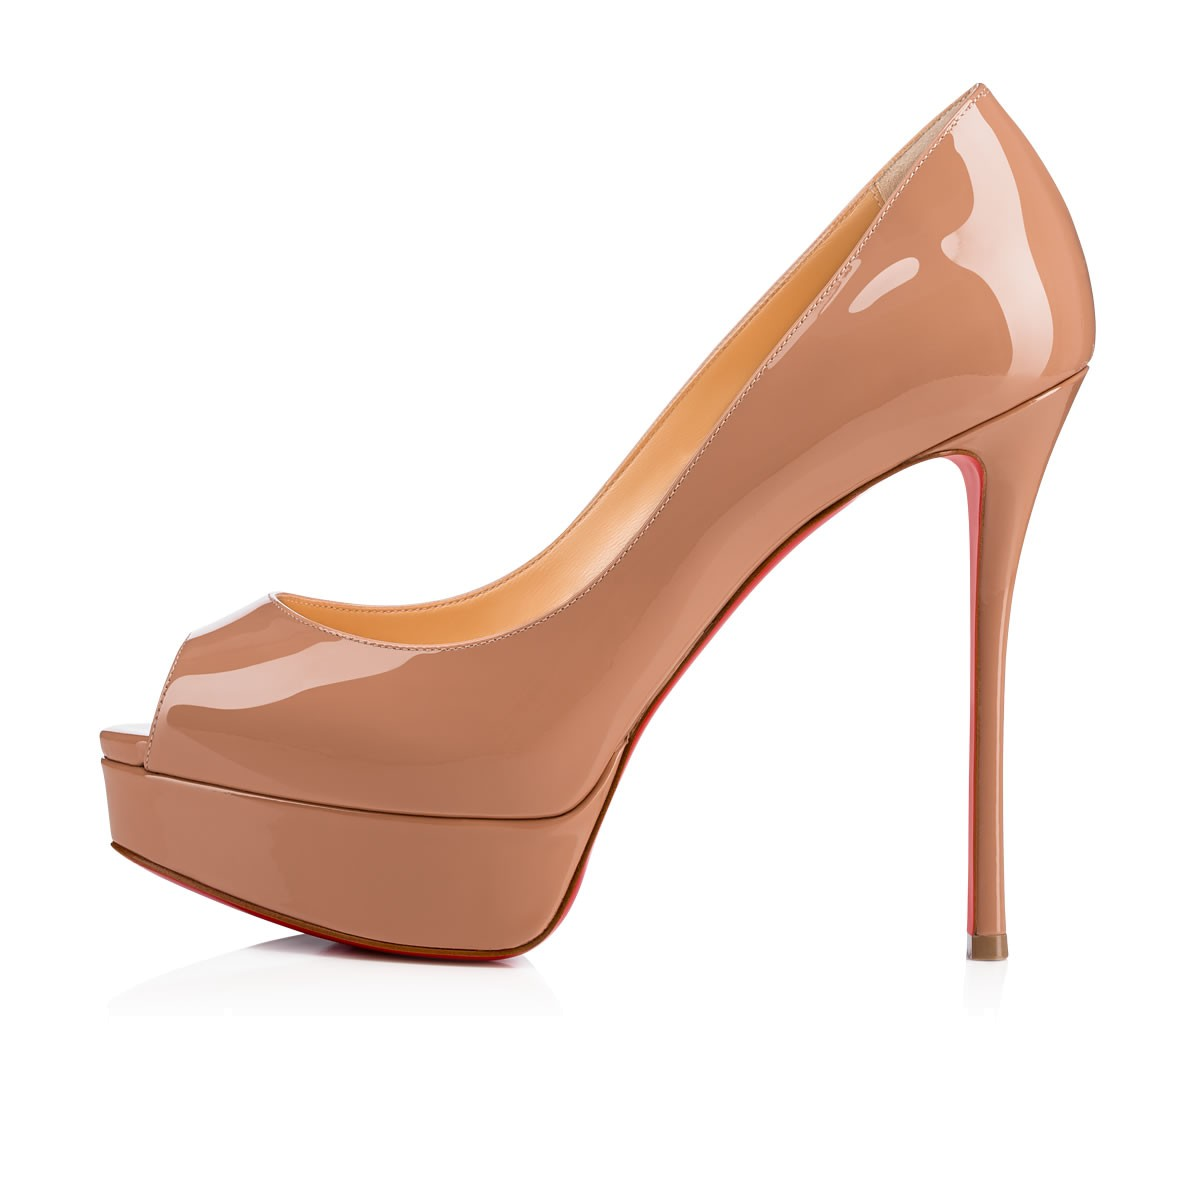 1791fddce19 Fetish Peep 130 Nude Patent Leather - Women Shoes - Christian Louboutin